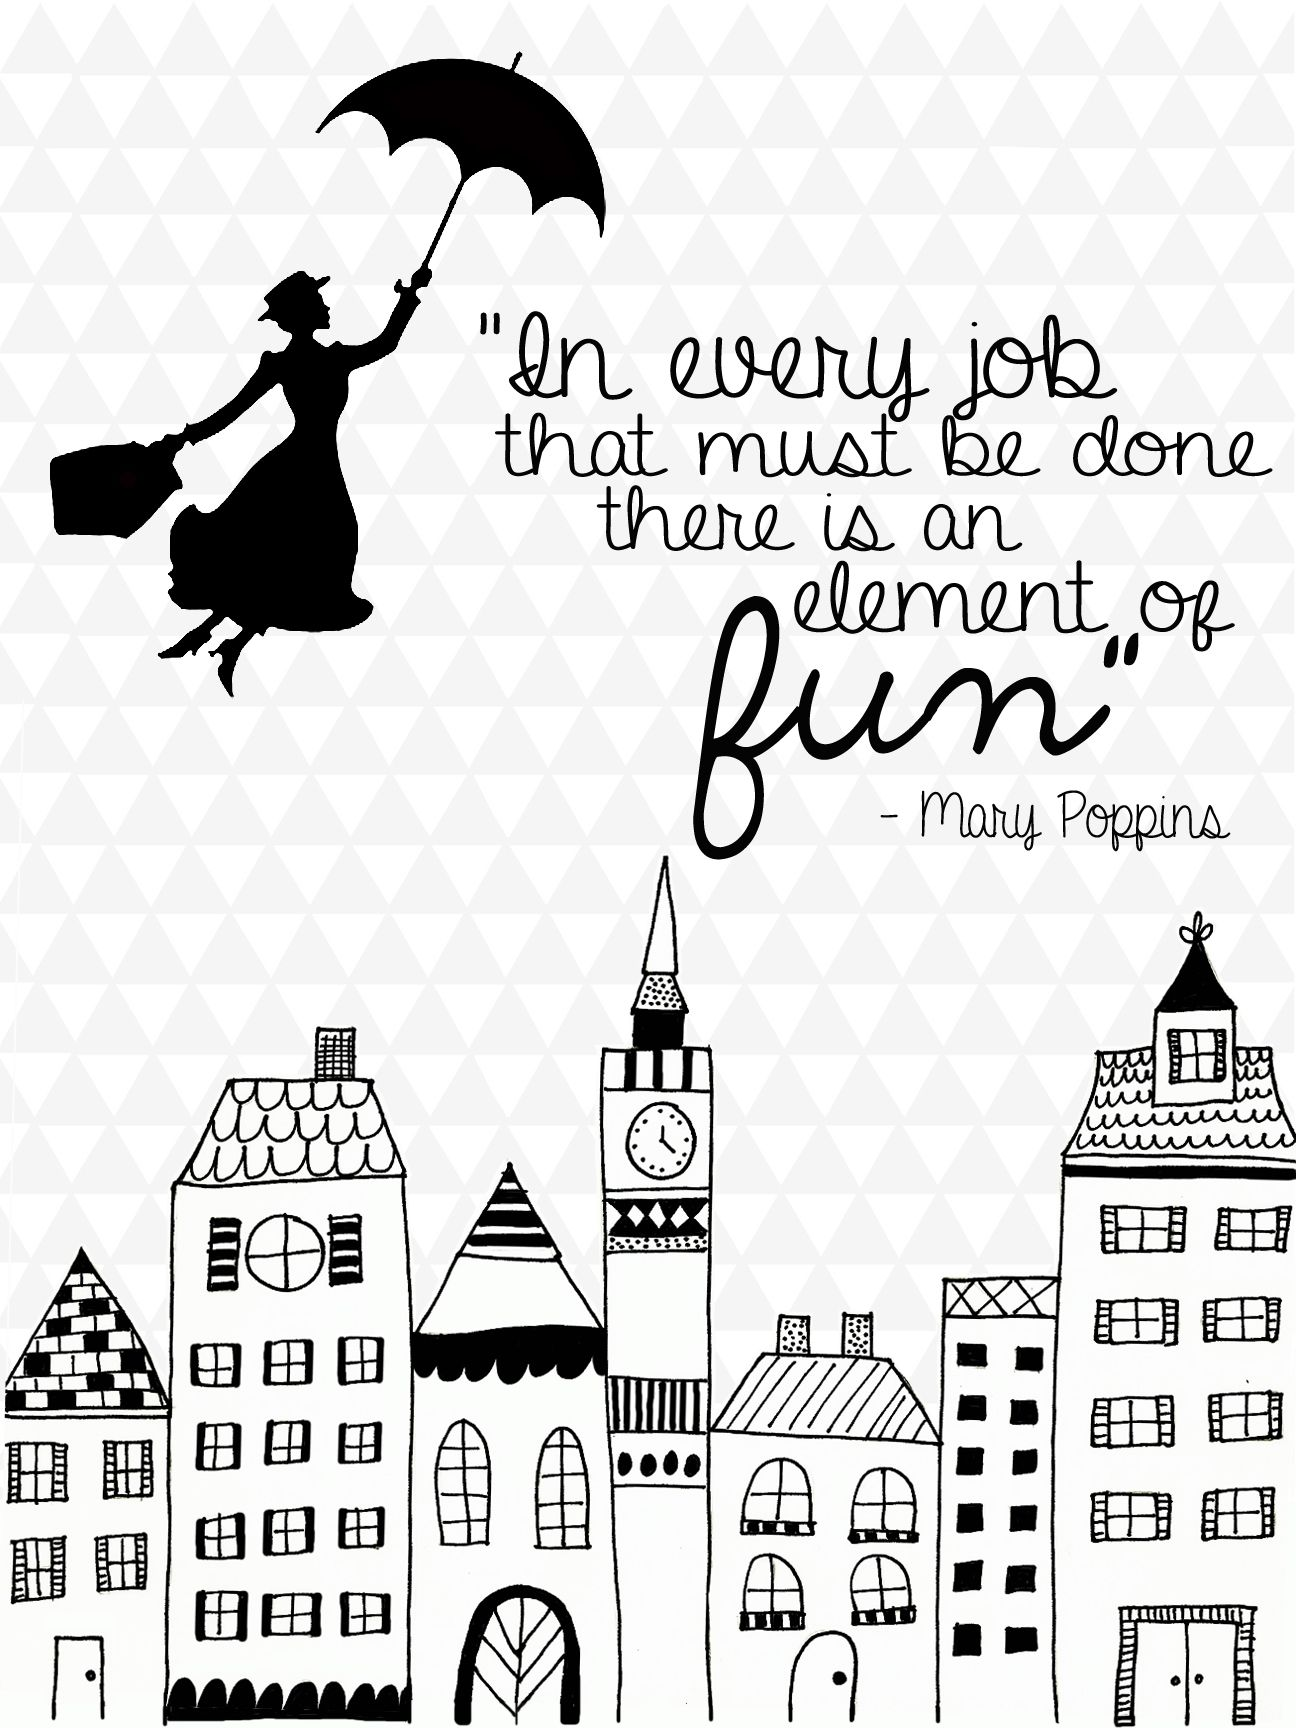 In every job that must be done there is an element of fun  is part of Mary poppins quotes - The laundry room  My arch nemesis    It's the room in our house that seems to collect everything that doesn't have a  home    it's the designated place for everything that doesn't have a designated place   It's a very small room that doubles as our primary storage closet in our little home